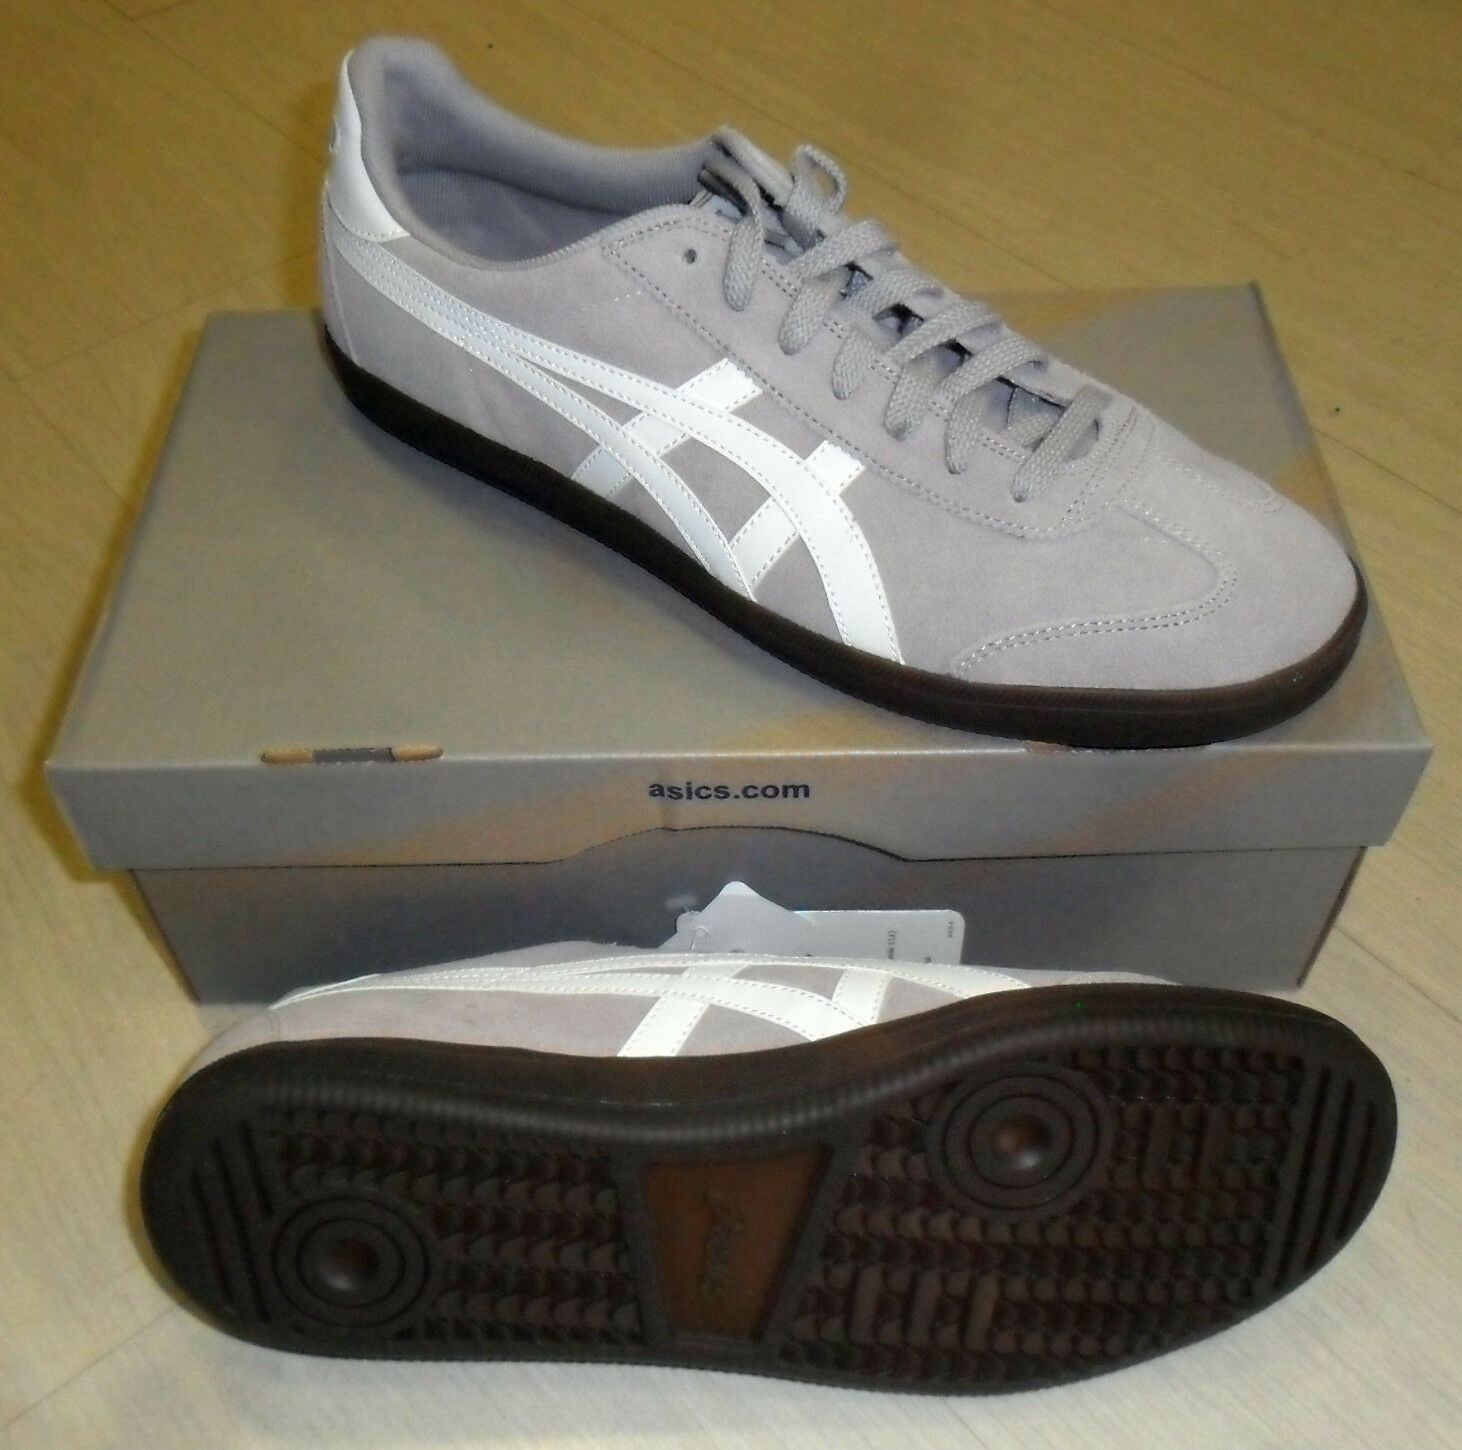 NR 40,5 ASICS AARON ONITSUKA SHOES MODE SHOES GYM H205L-1101 GREY